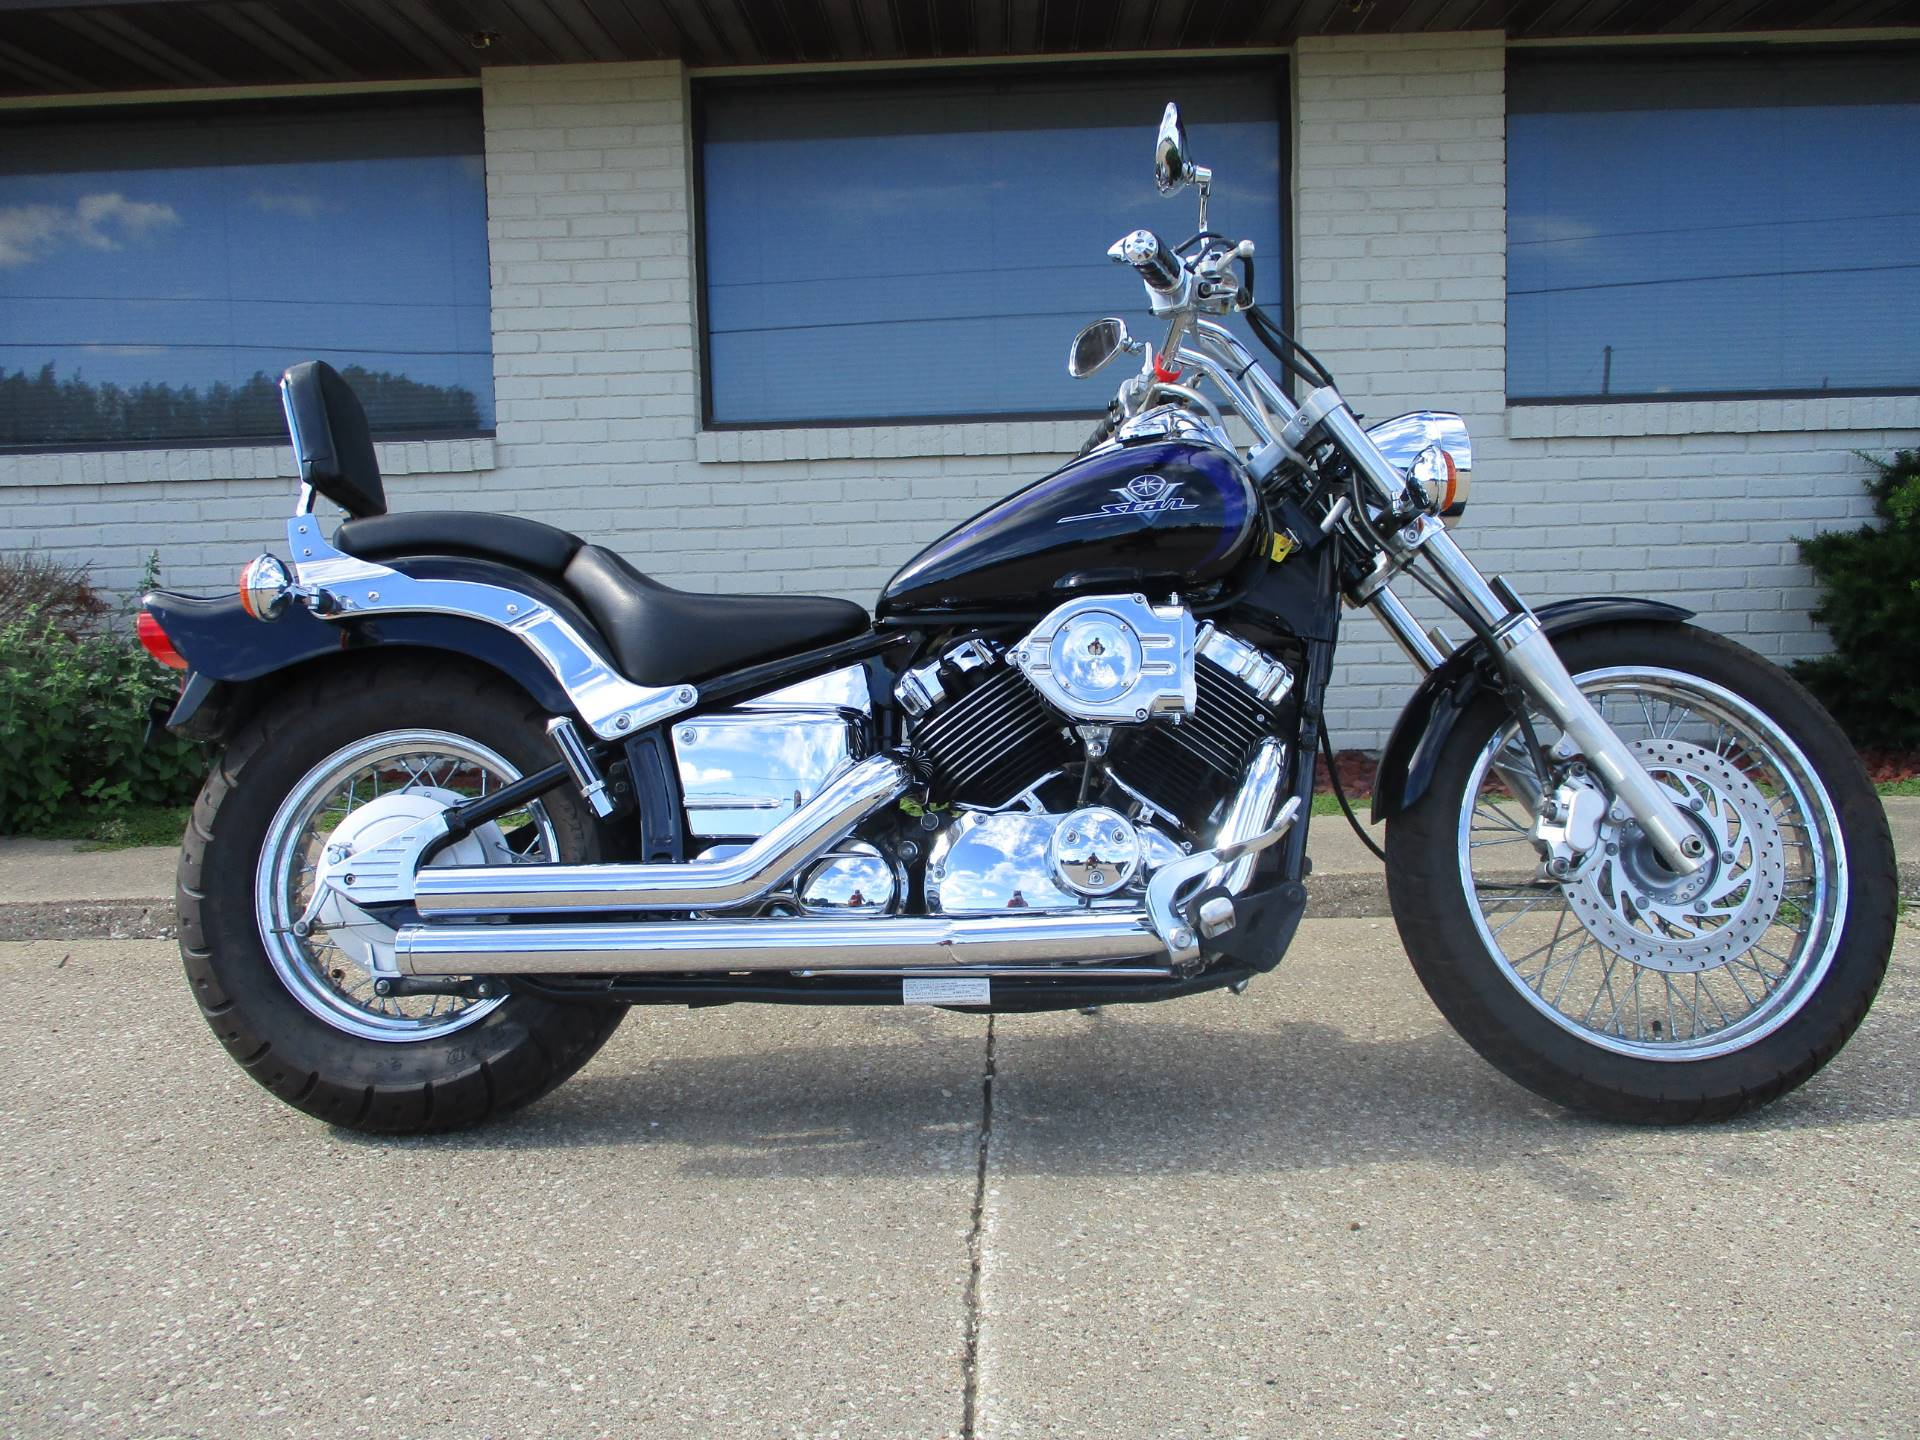 used 2003 yamaha v star 650 motorcycles in winterset ia stock number ya13a057001. Black Bedroom Furniture Sets. Home Design Ideas